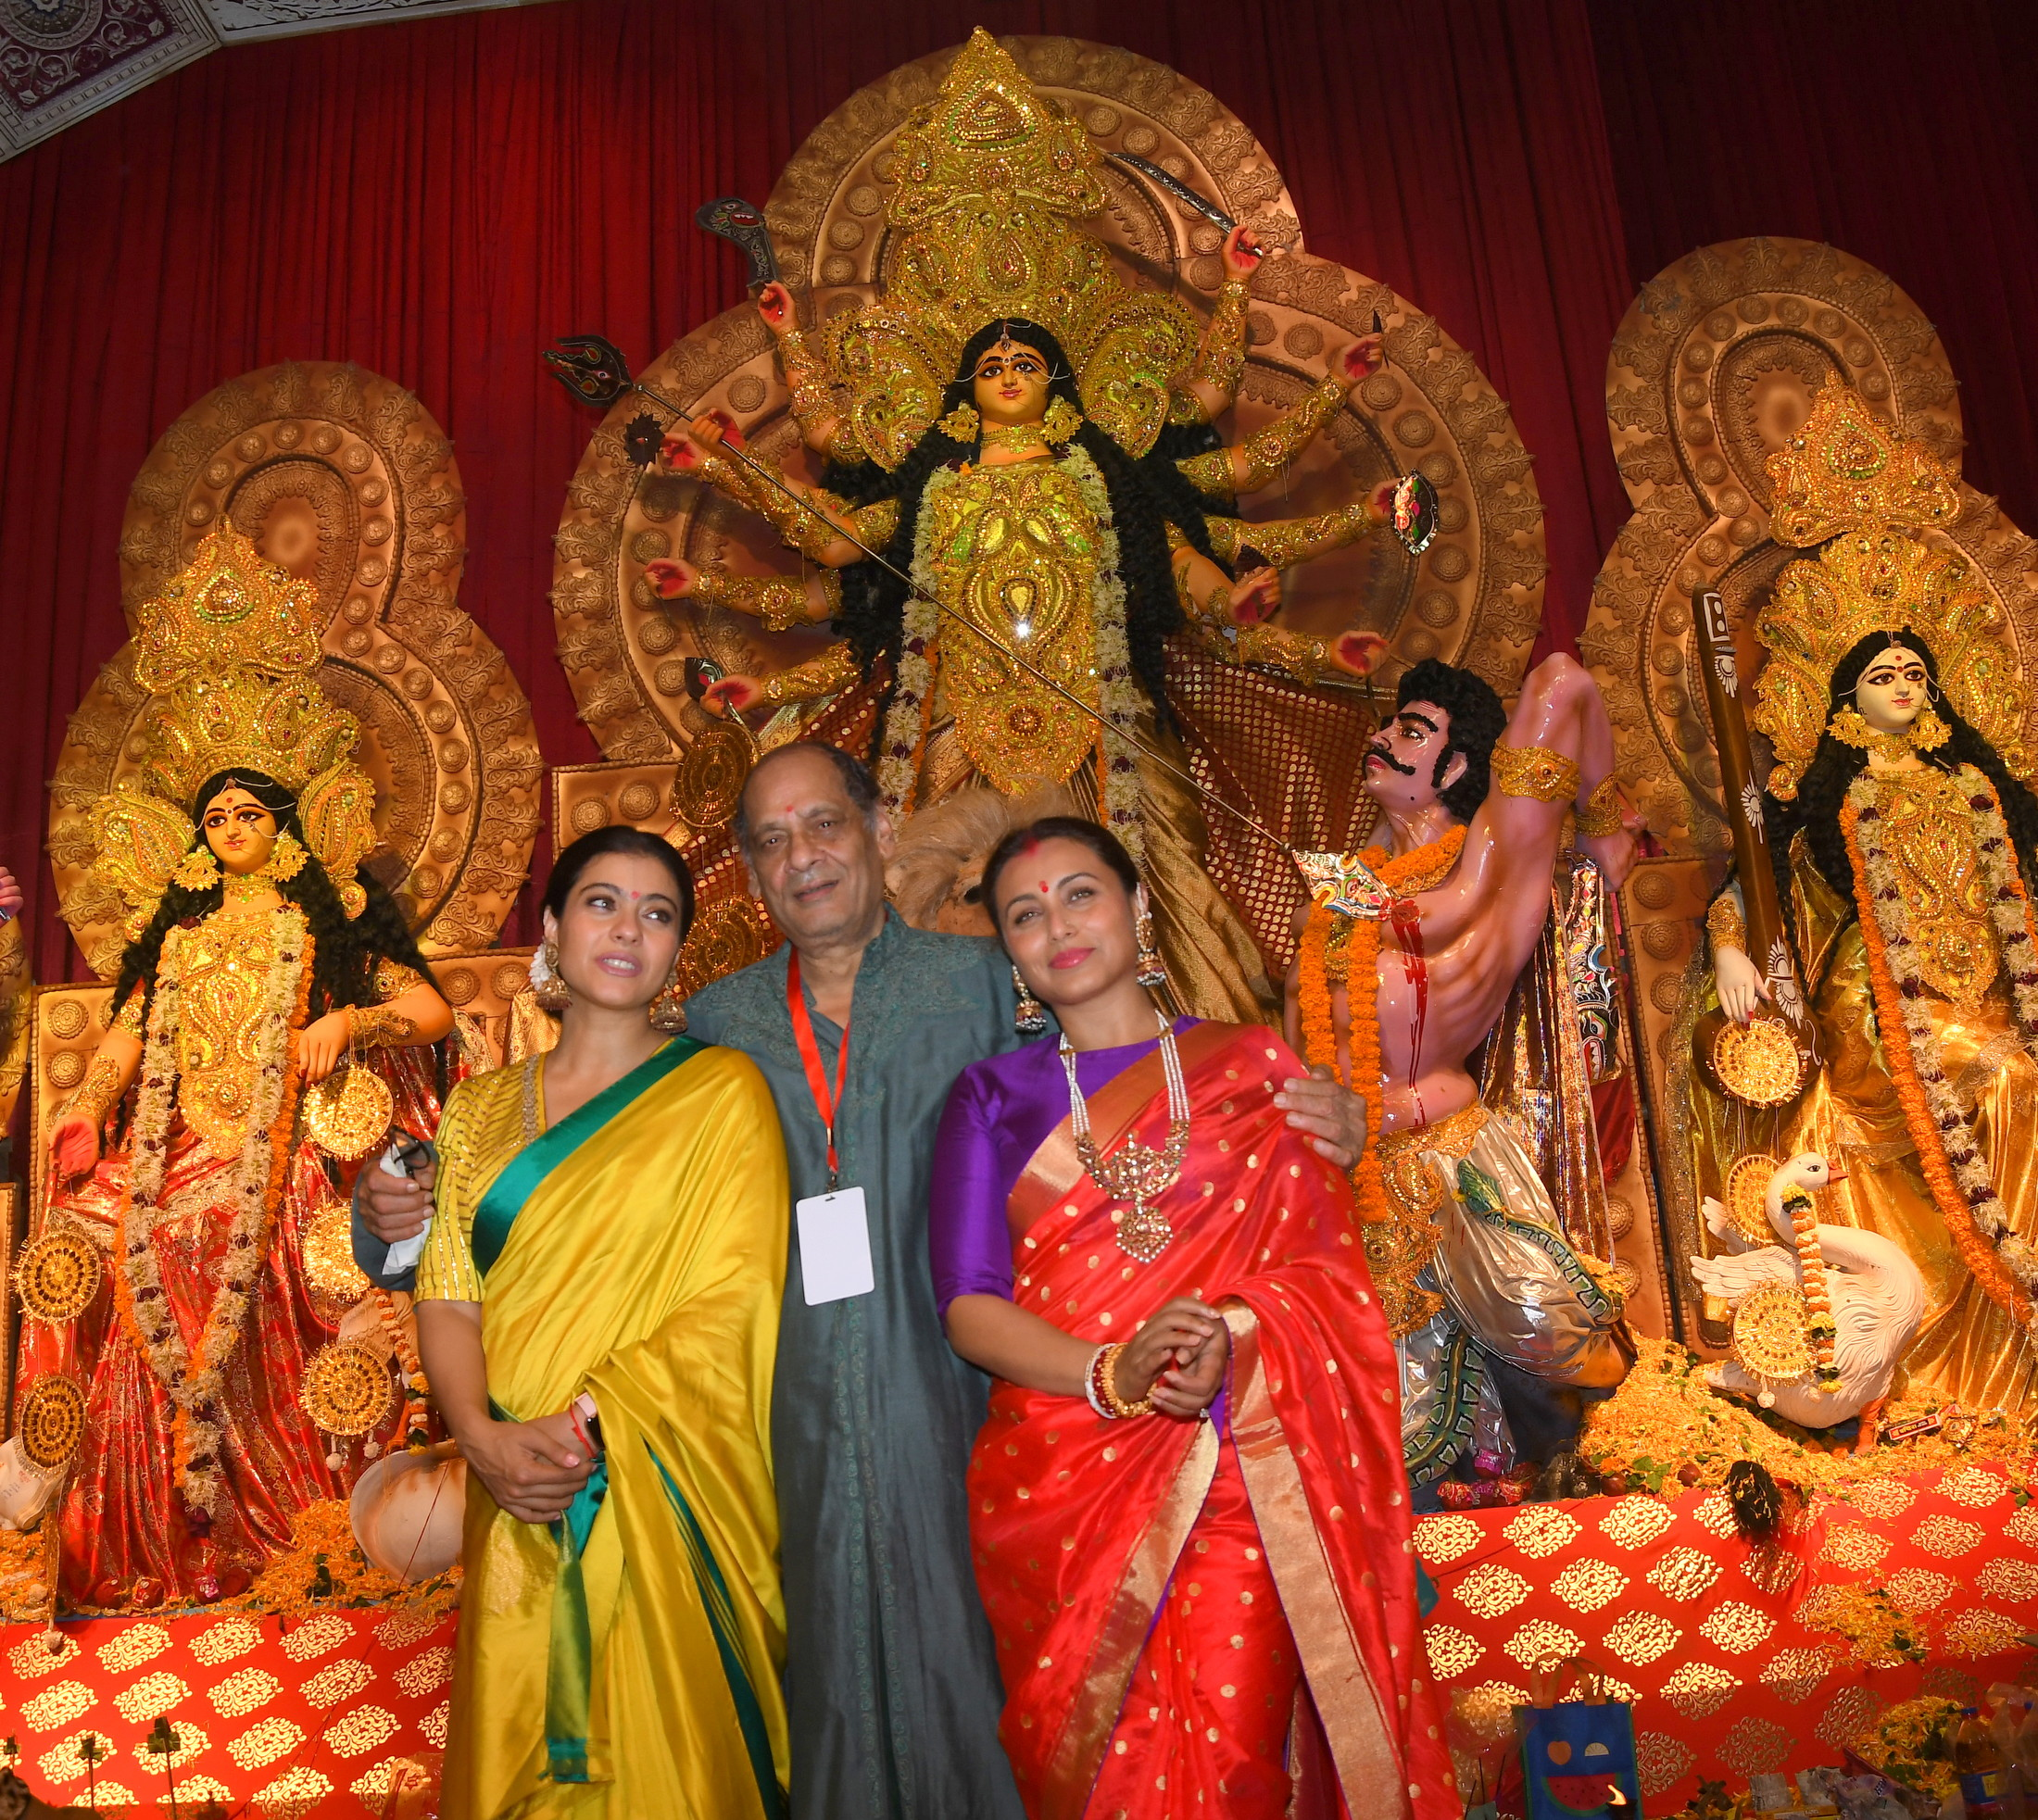 Kajol Devgan with Debu Mukherjee and Rani Mukherjee at North Bombay Sarbojanin Durga Puja Samiti's DURGA PUJA 2019 DSC_0105